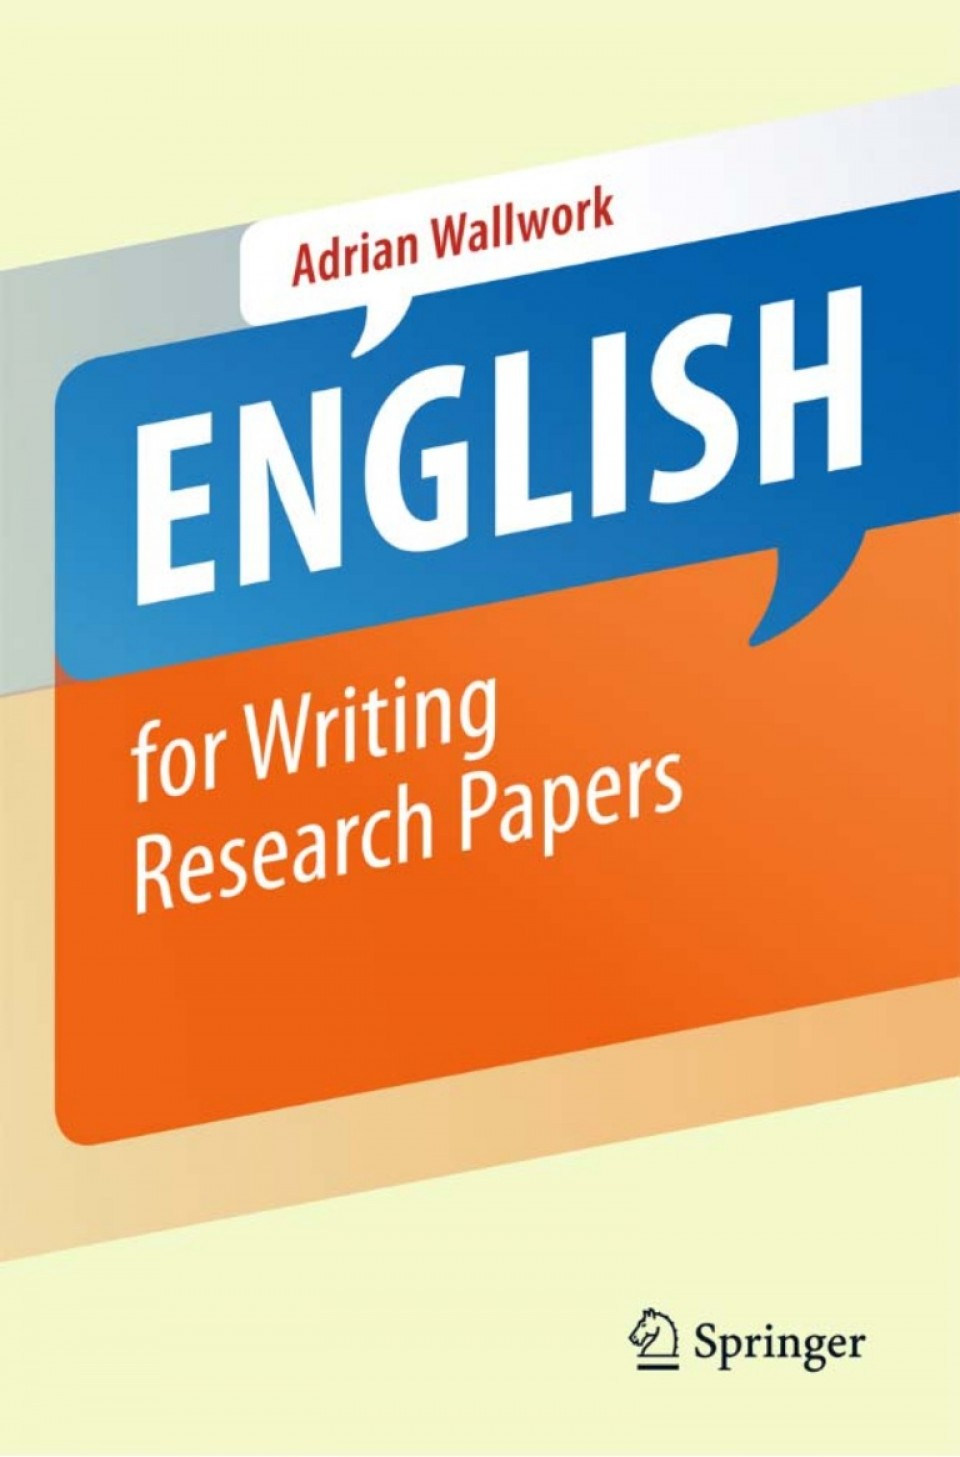 019 Englishforwritingresearchpapers Conversion Gate01 Thumbnail Writing Research Striking Paper Papers A Complete Guide 16th Edition Pdf 15th 960